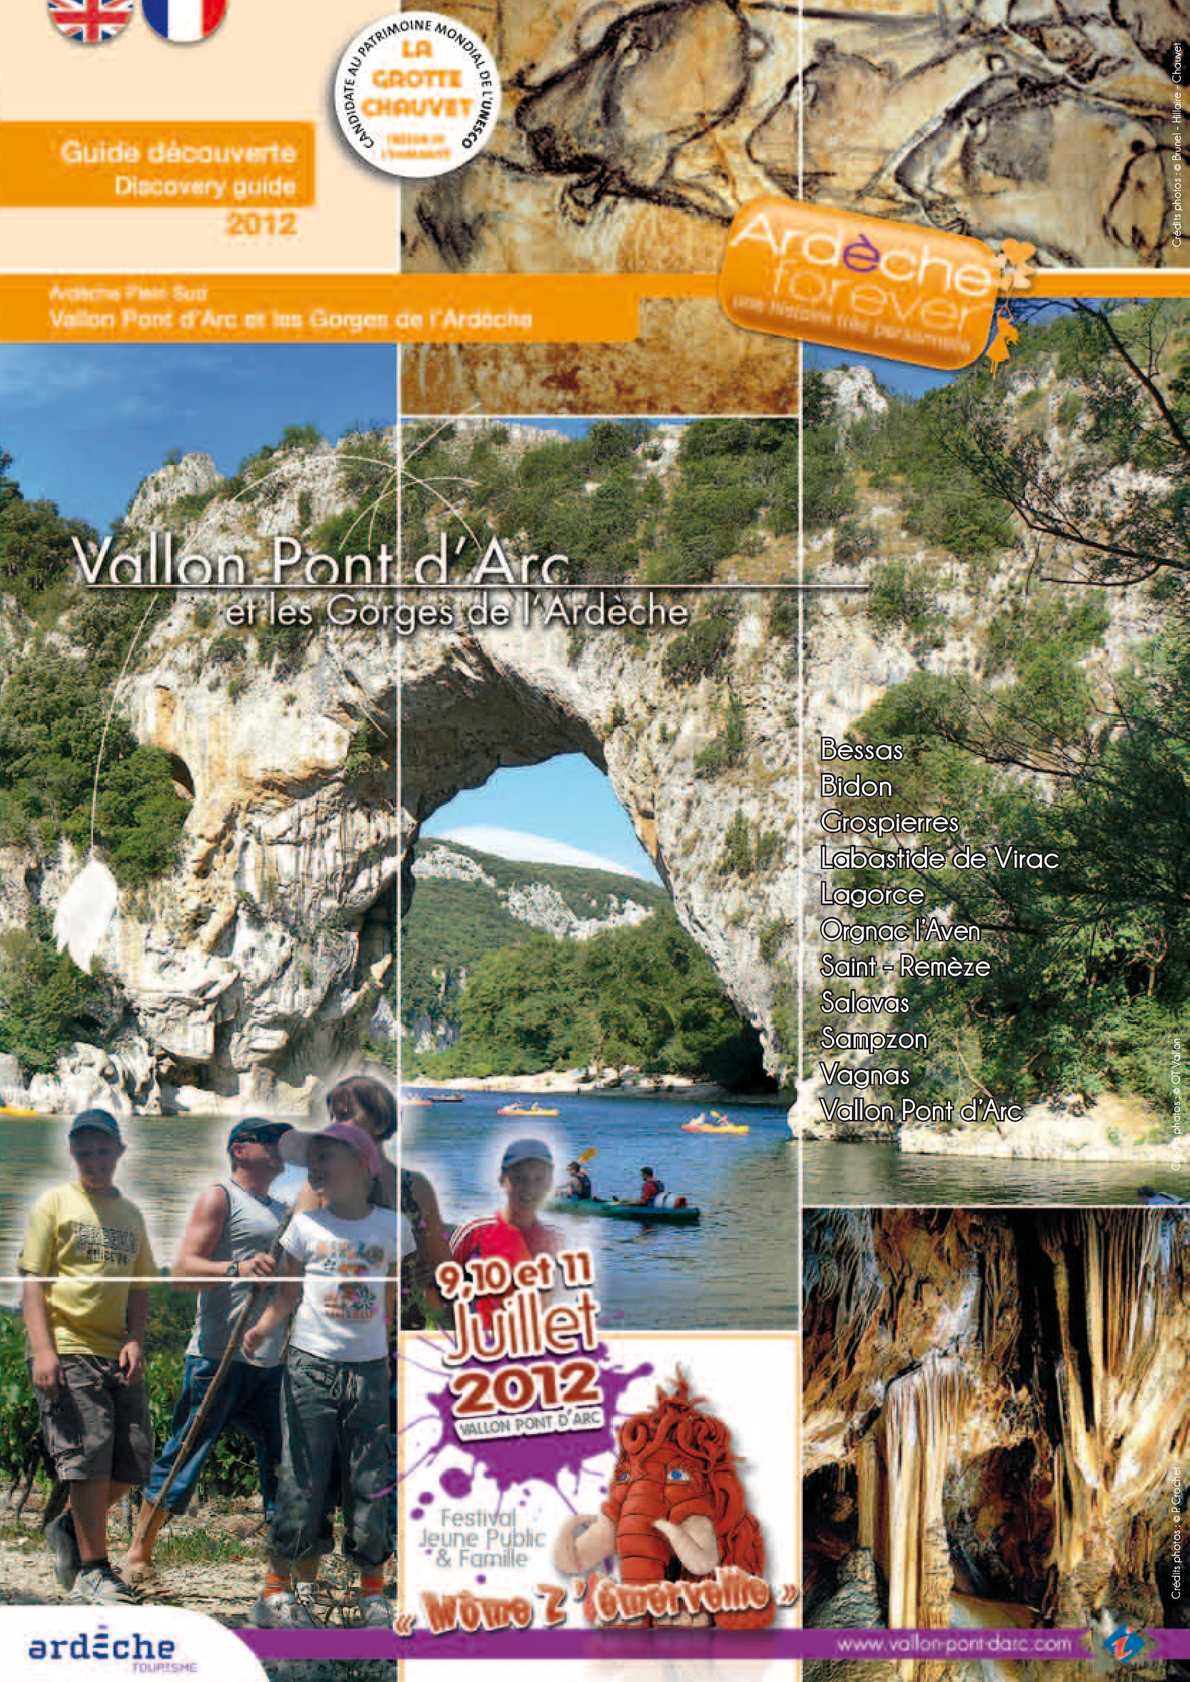 Calam o guide 2012 vallon pont d 39 arc et les gorges de - Office de tourisme de vallon pont d arc ...